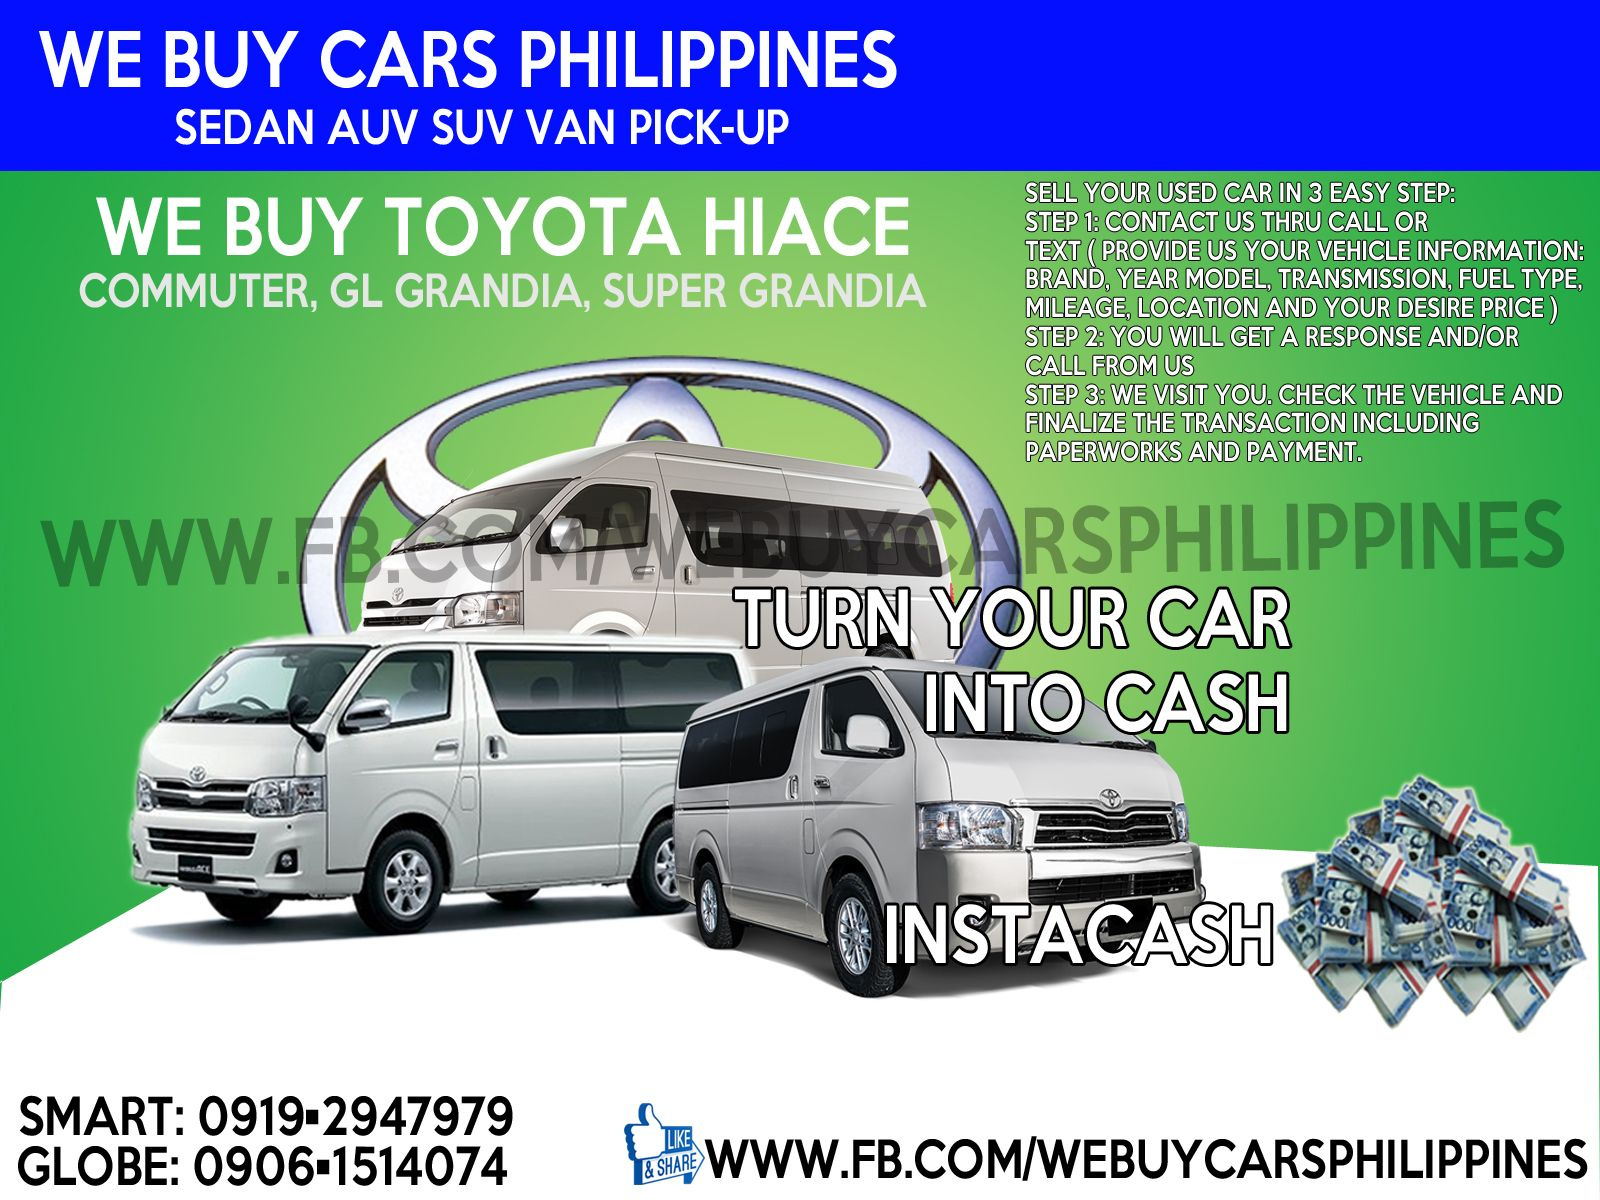 We Buy Used Toyota Hiace Philippines Contact numbers